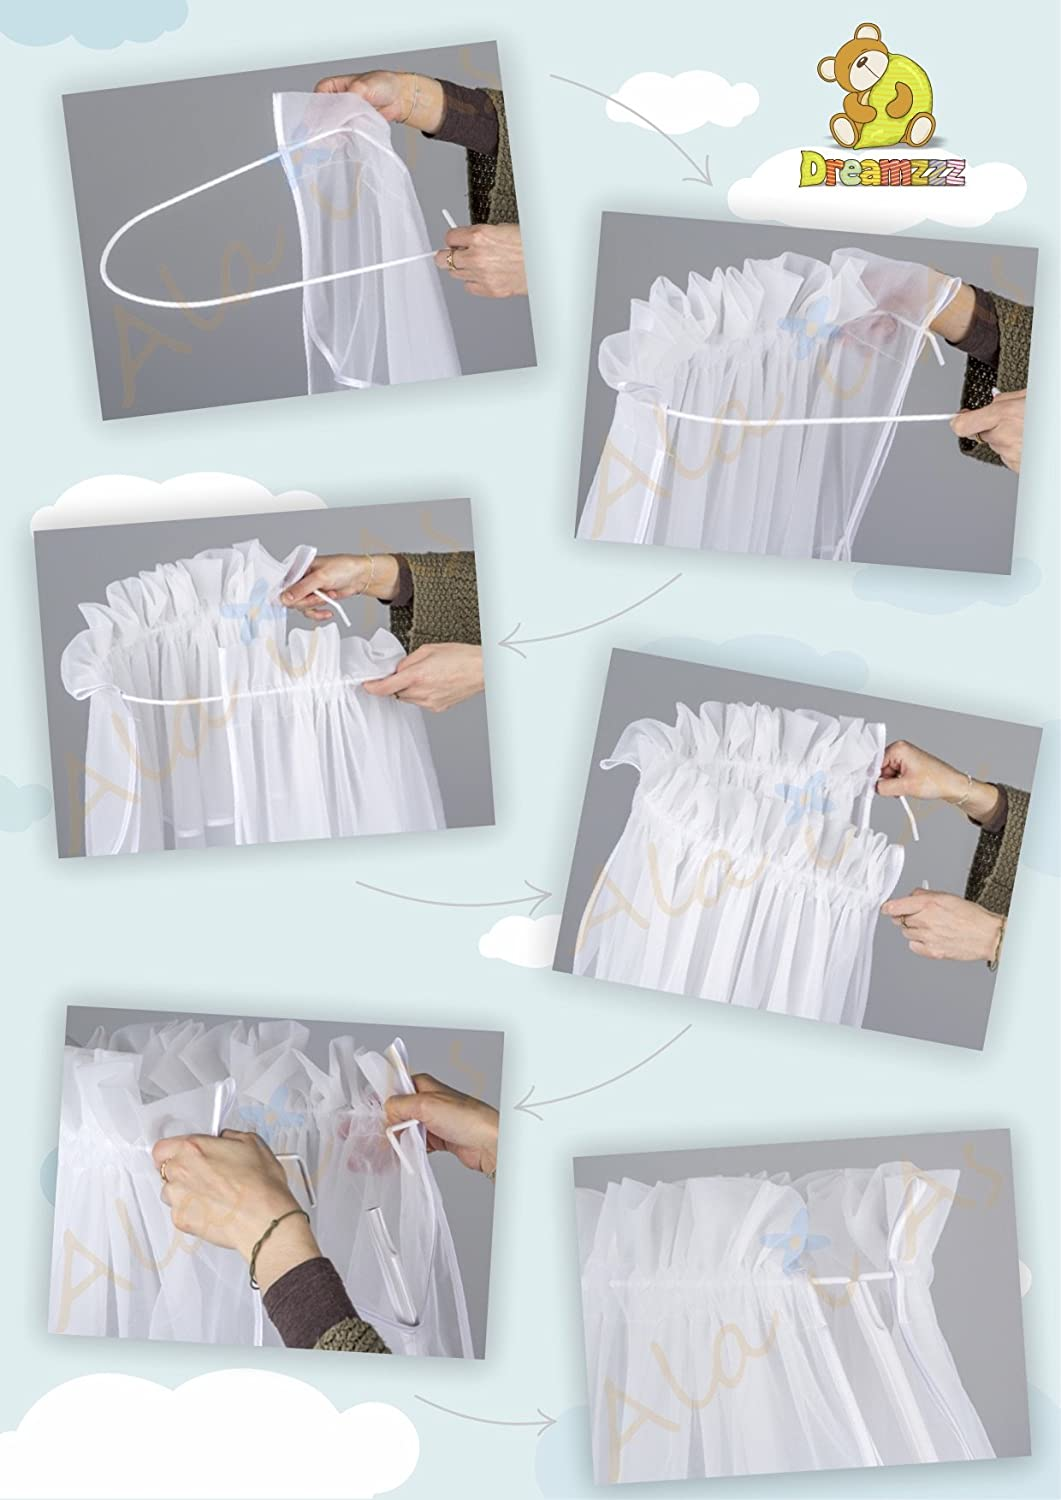 Holder 3 element set Lovely Canopy//Mosquito Net for Baby Cot Bed Crib hanging Decorations Designed by Dreamzzz handmade